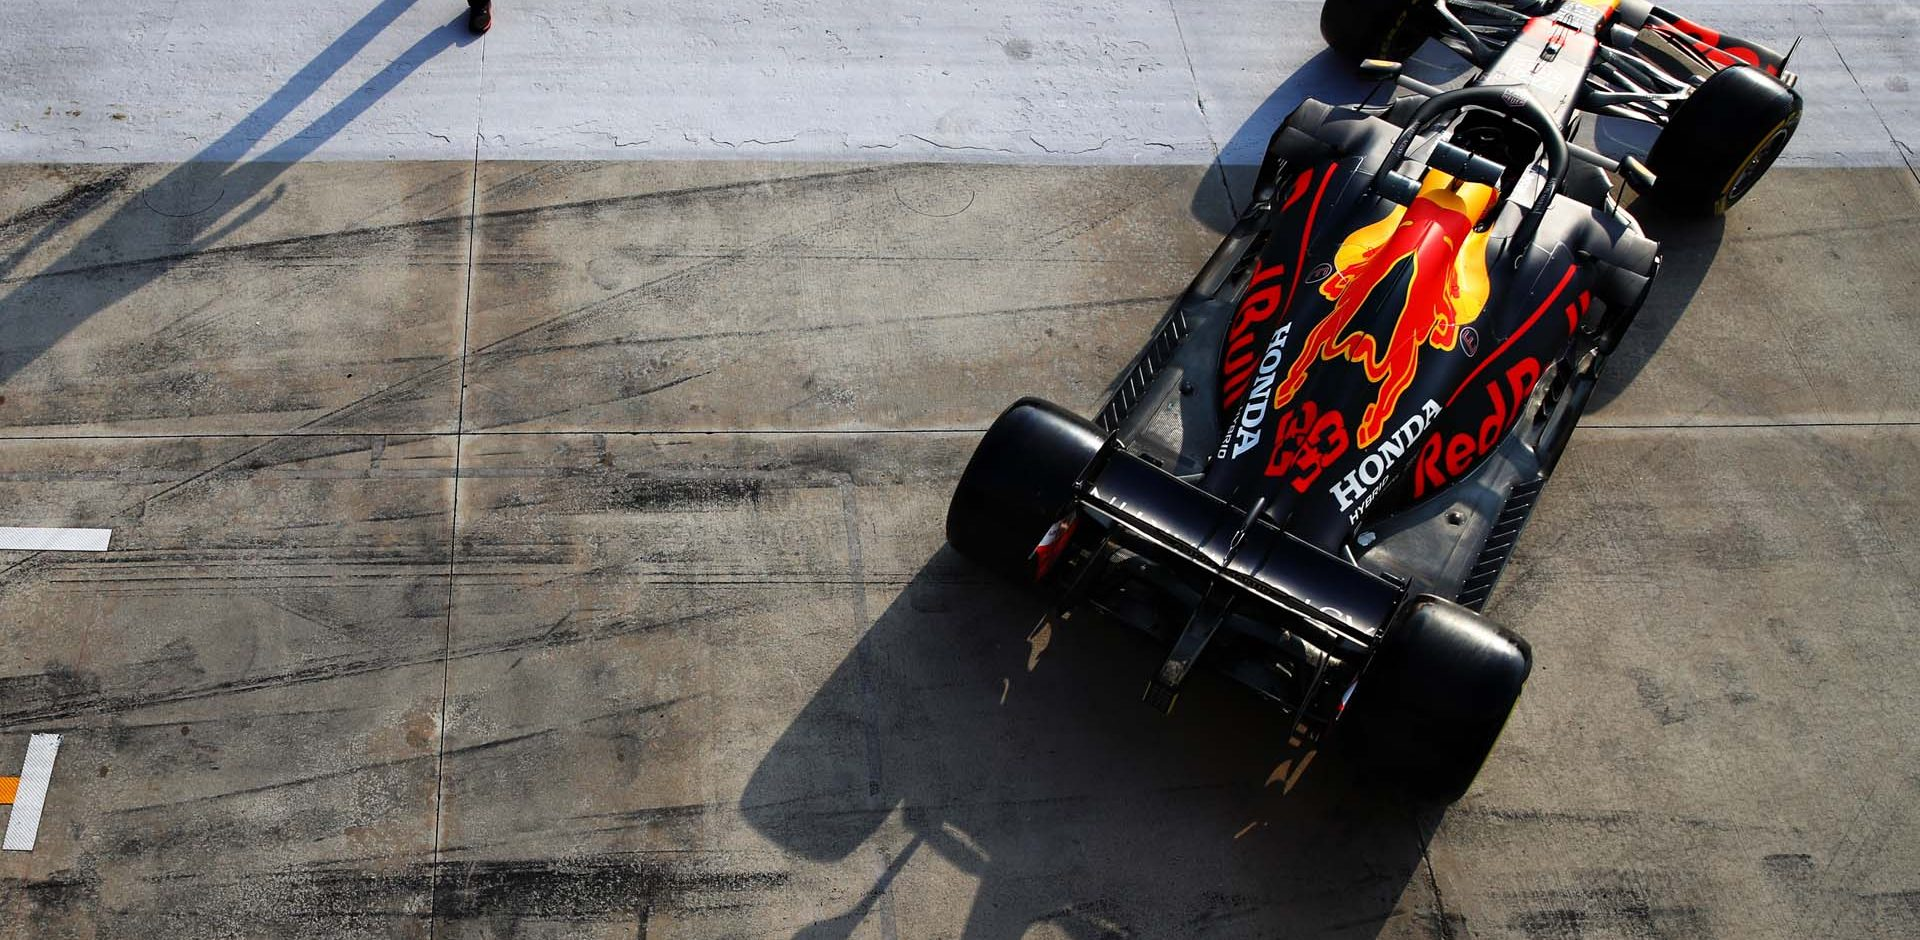 IMOLA, ITALY - OCTOBER 31: Max Verstappen of the Netherlands driving the (33) Aston Martin Red Bull Racing RB16 leaves the garage during qualifying ahead of the F1 Grand Prix of Emilia Romagna at Autodromo Enzo e Dino Ferrari on October 31, 2020 in Imola, Italy. (Photo by Mark Thompson/Getty Images)